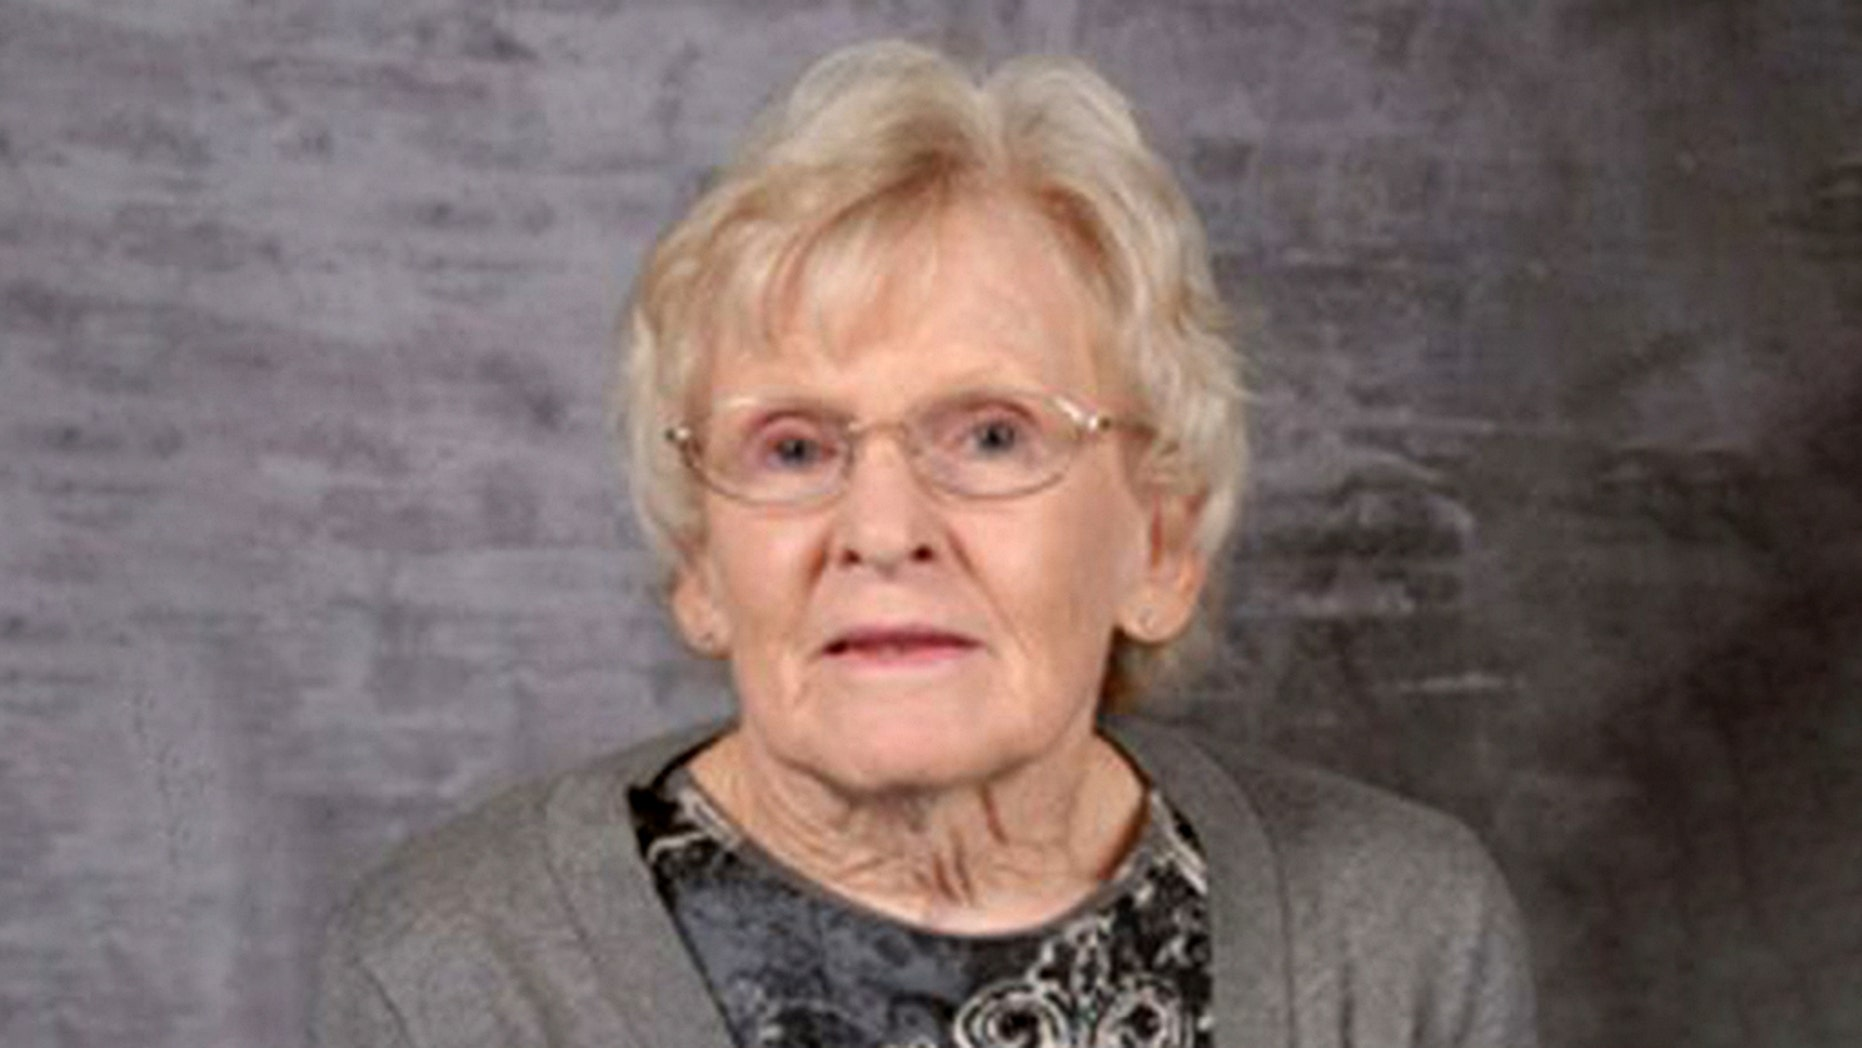 Brenda Hamilton, 77, died after a puzzling animal conflict in Pantego, North Carolina, on Feb. 15, 2019.